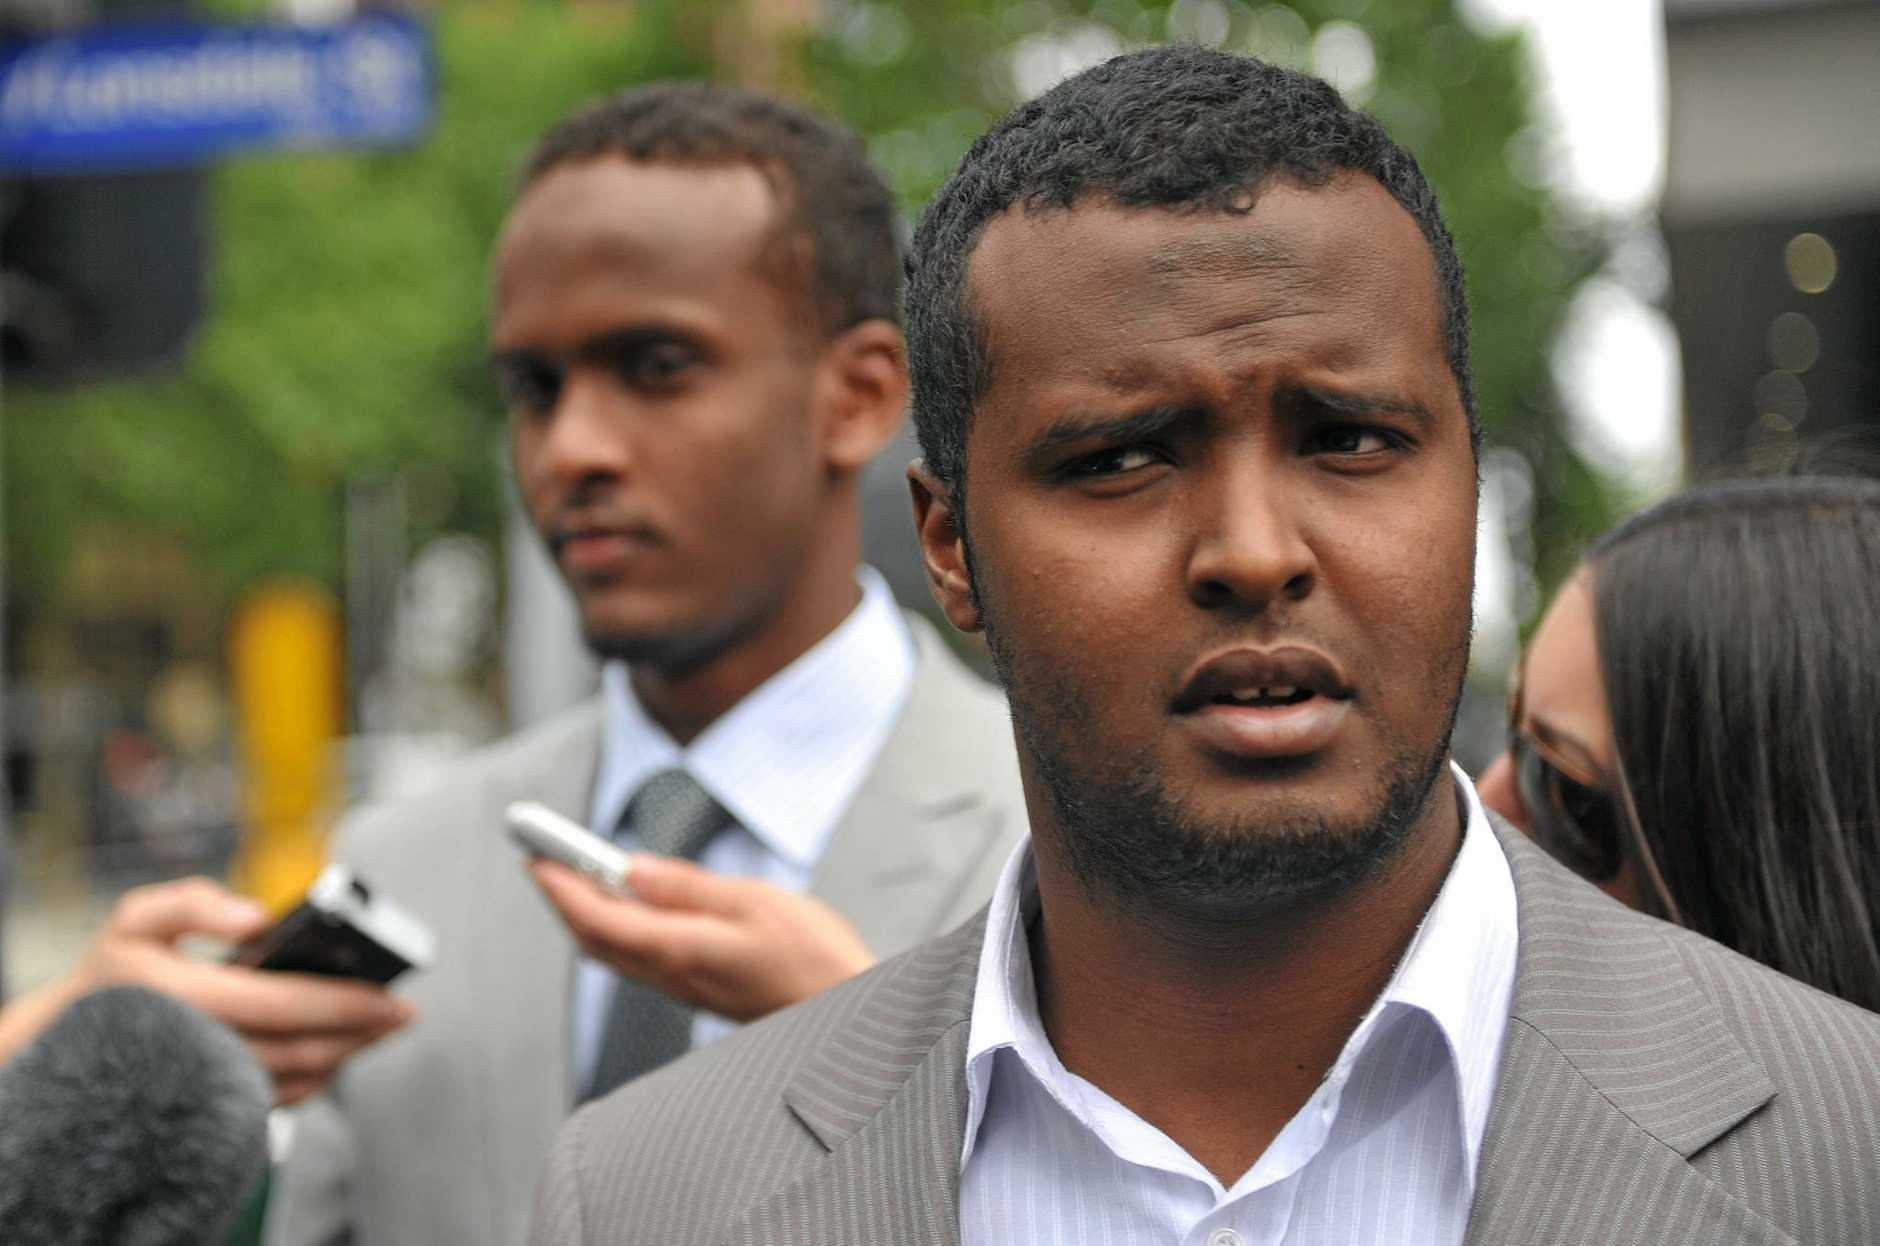 Yacqub Khayre (right) and Abdirahman Amend leave court in Melbourne, Thursday, Dec. 23, 2010. The two men were acquitted by a Supreme Court jury, of planning an alleged terrorist attack on the Holsworthy army base in Sydney, while the other three co-accused were found guilty. (AAP Image/Julian Smith) NO ARCHIVING